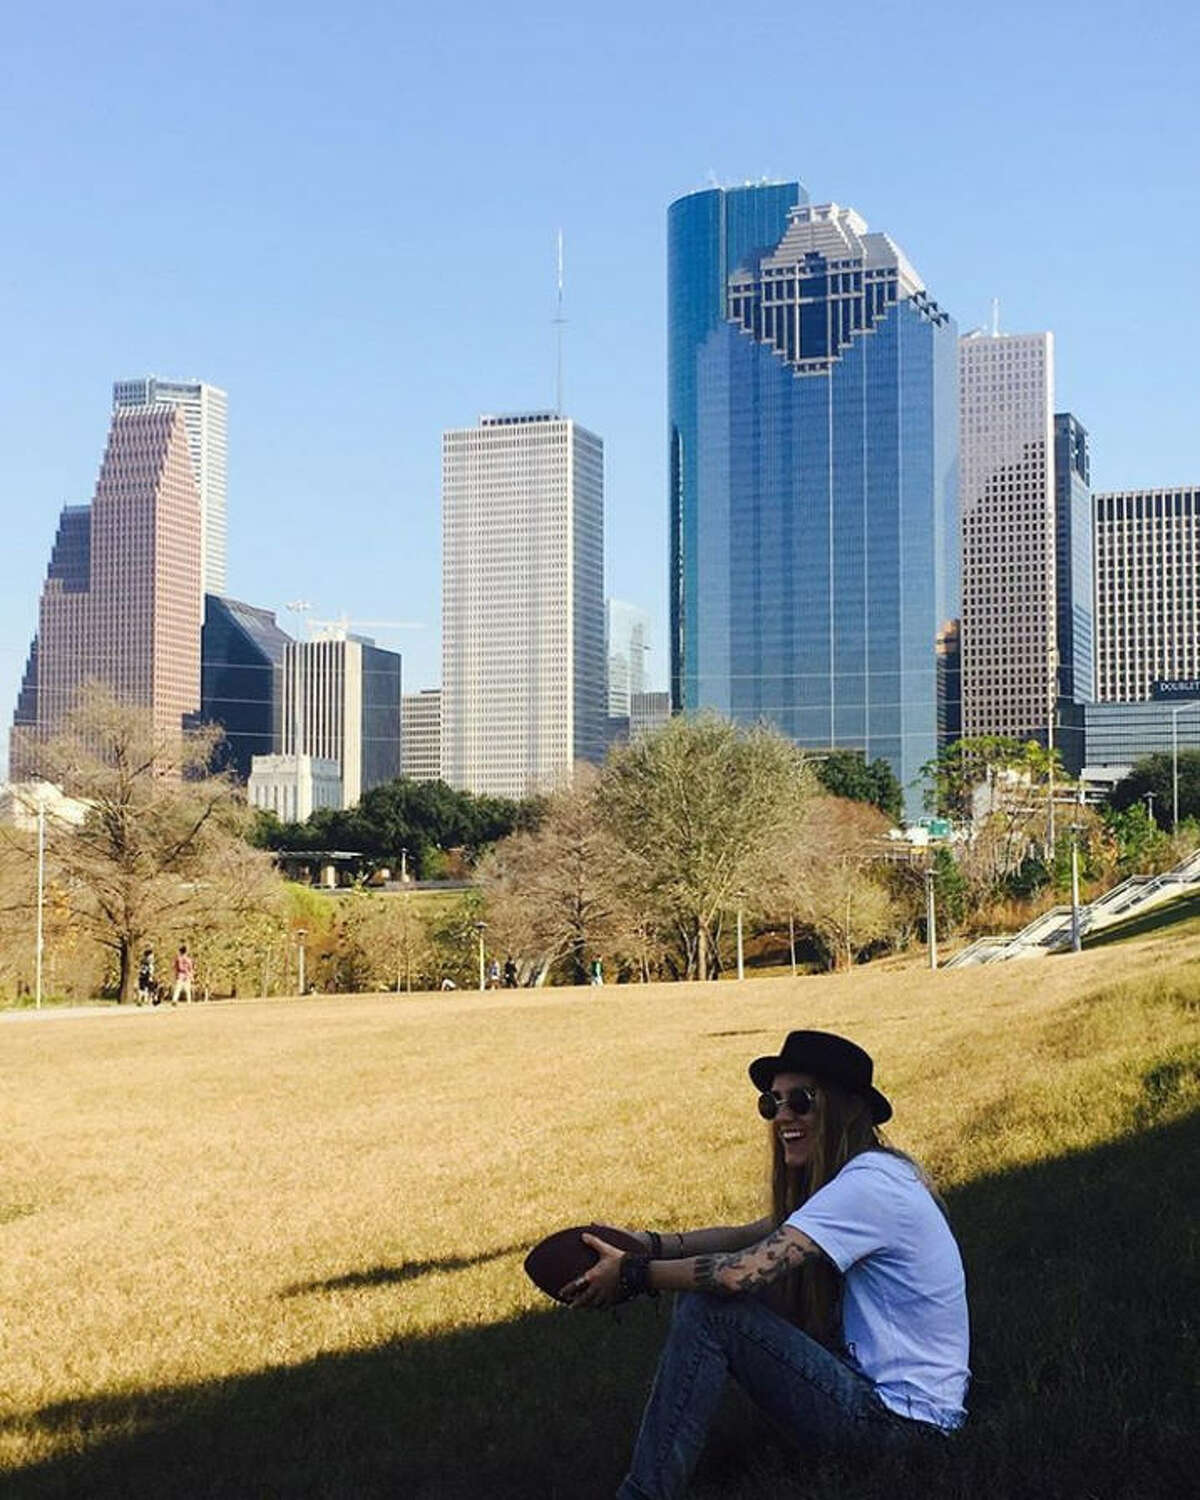 What do you love most about Houston? Houston is seriously the best kept secret of America. You get the city life without losing the community vibe. I've found my tribe in Houston, and I've been given an abundance of opportunities in not just the musical world but in the medical field as well. The diversity of culture and every day experiences have shaped me in a lot of positive ways.